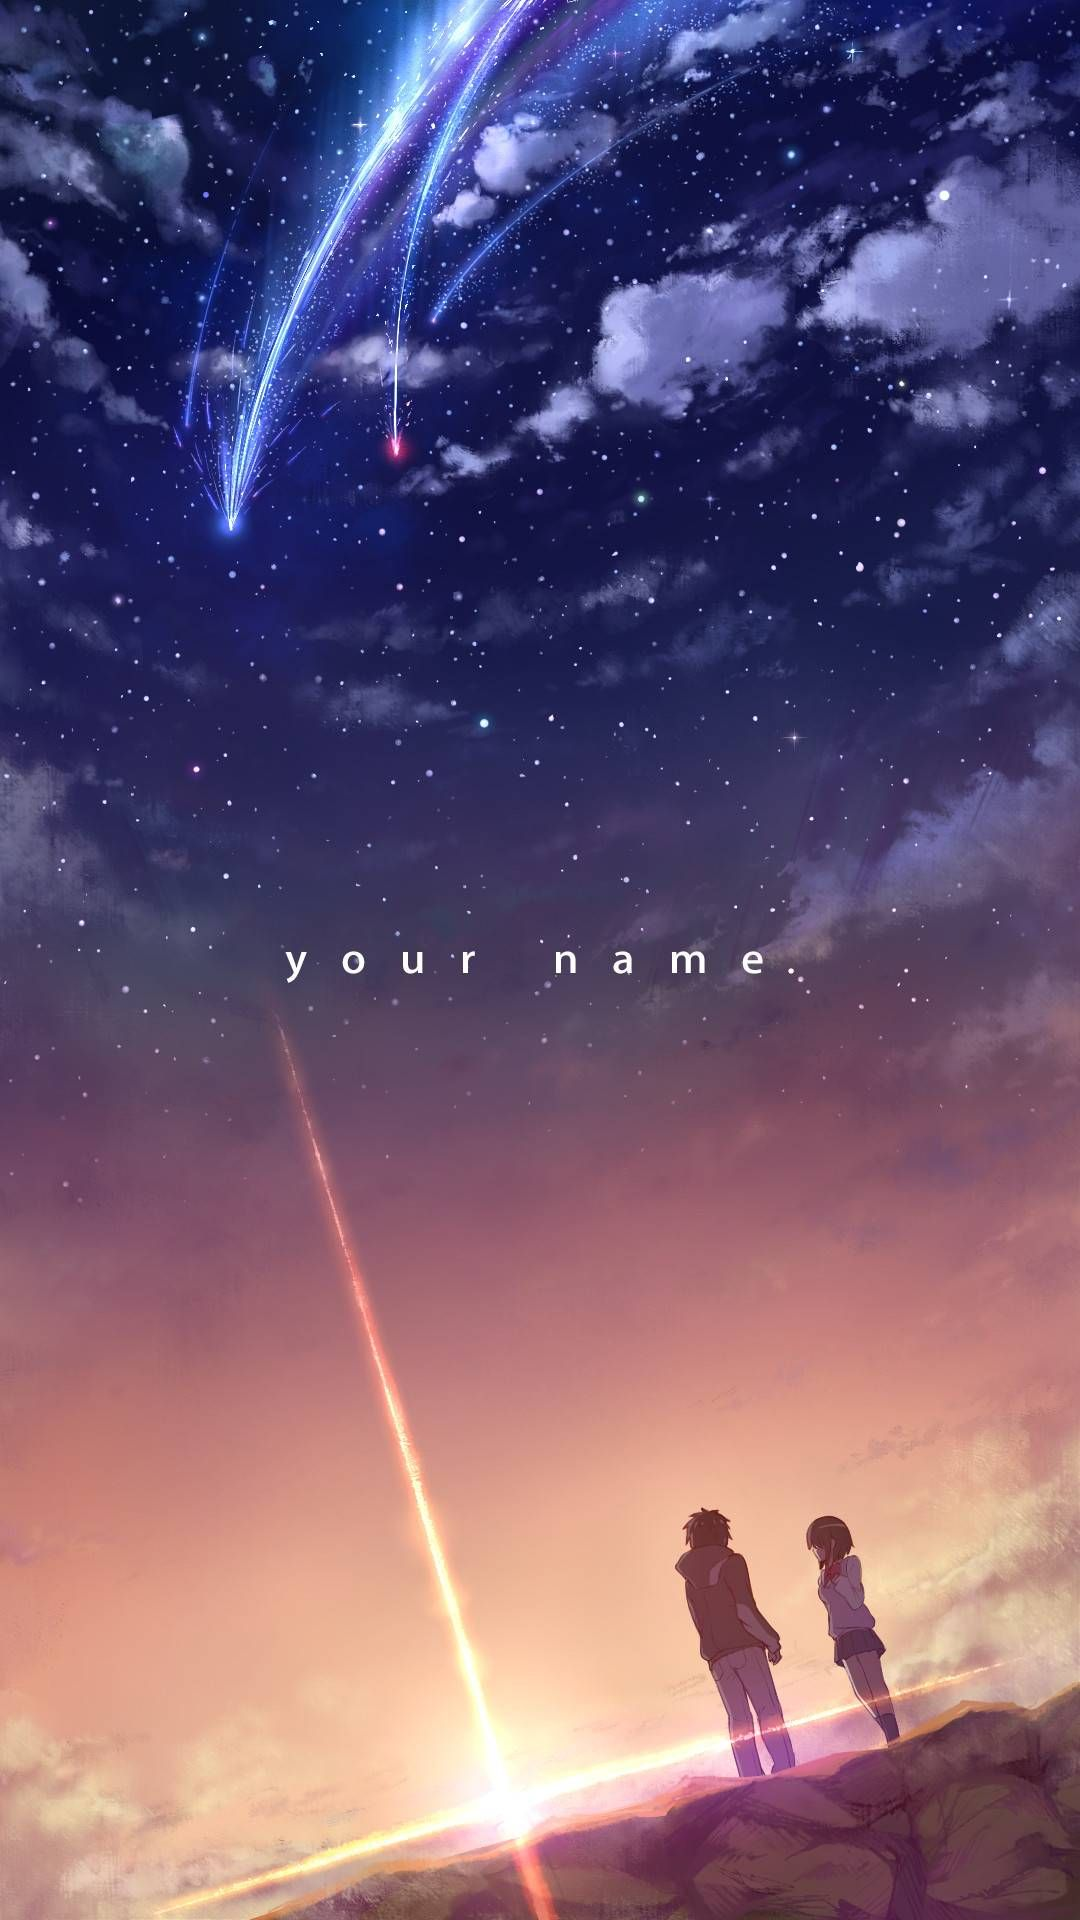 Your Name/Kimi no na wa (1080x1920) Japanese film ...